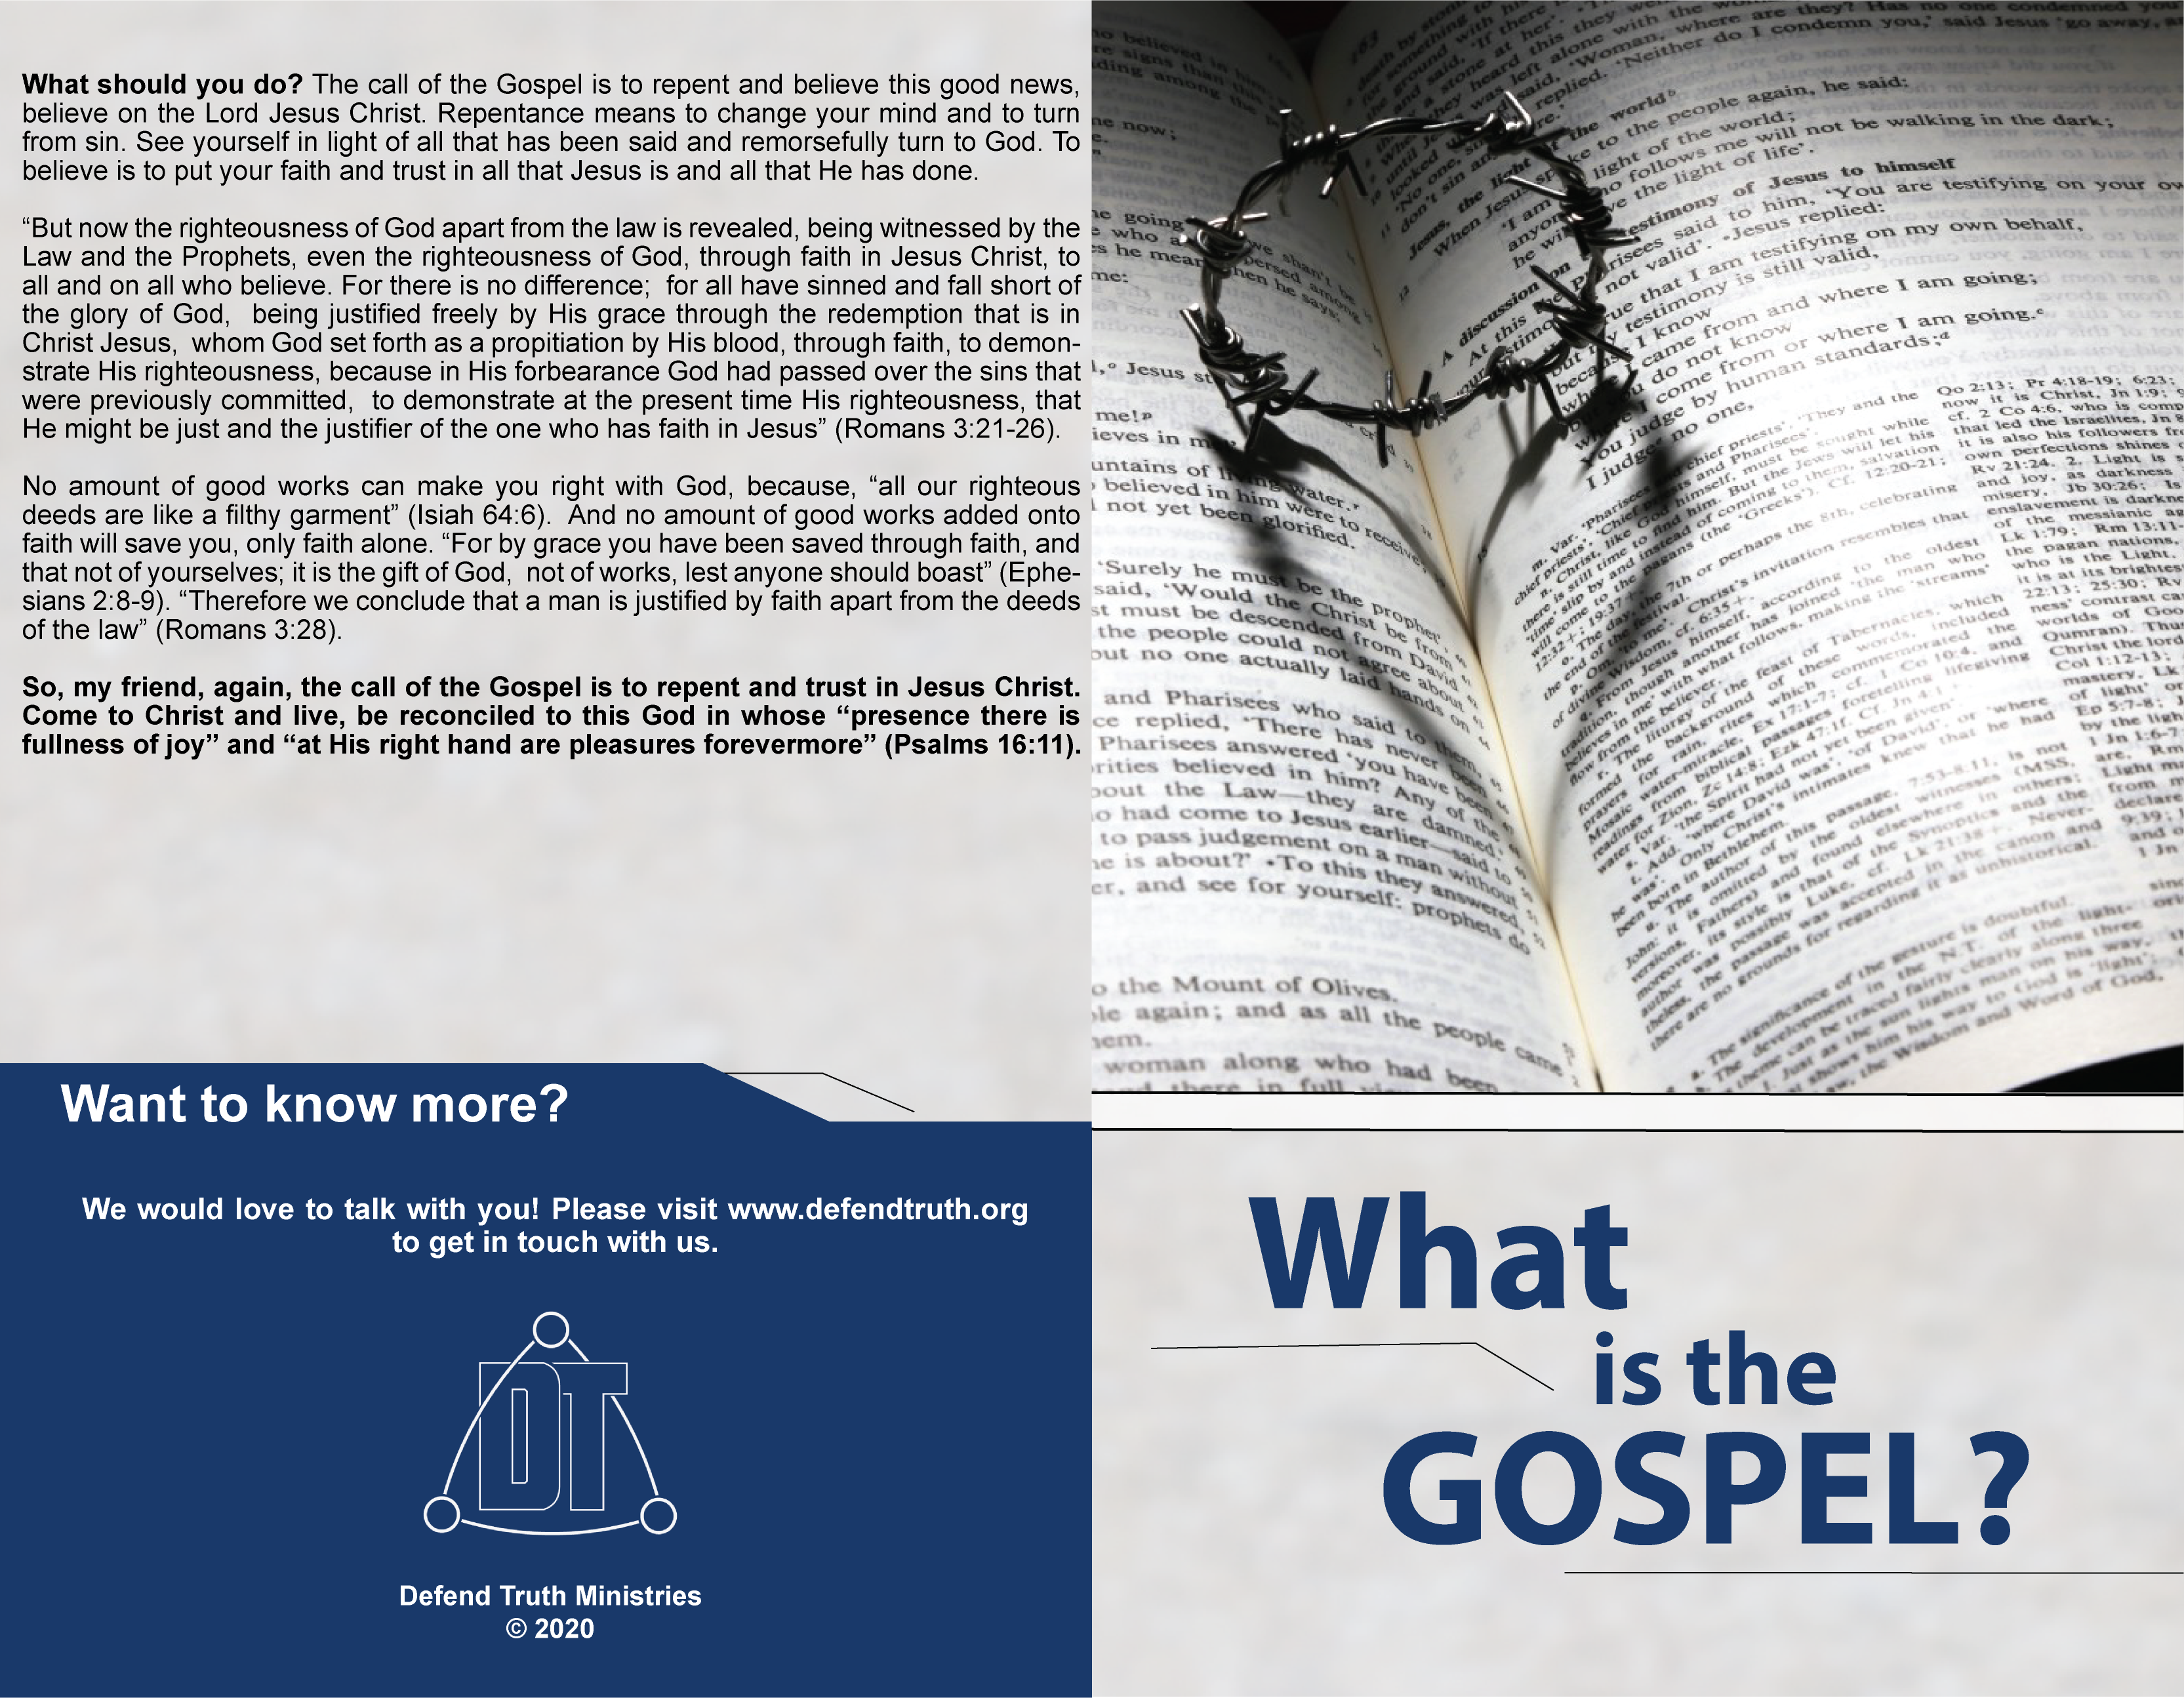 What Is the Gospel? - Outside